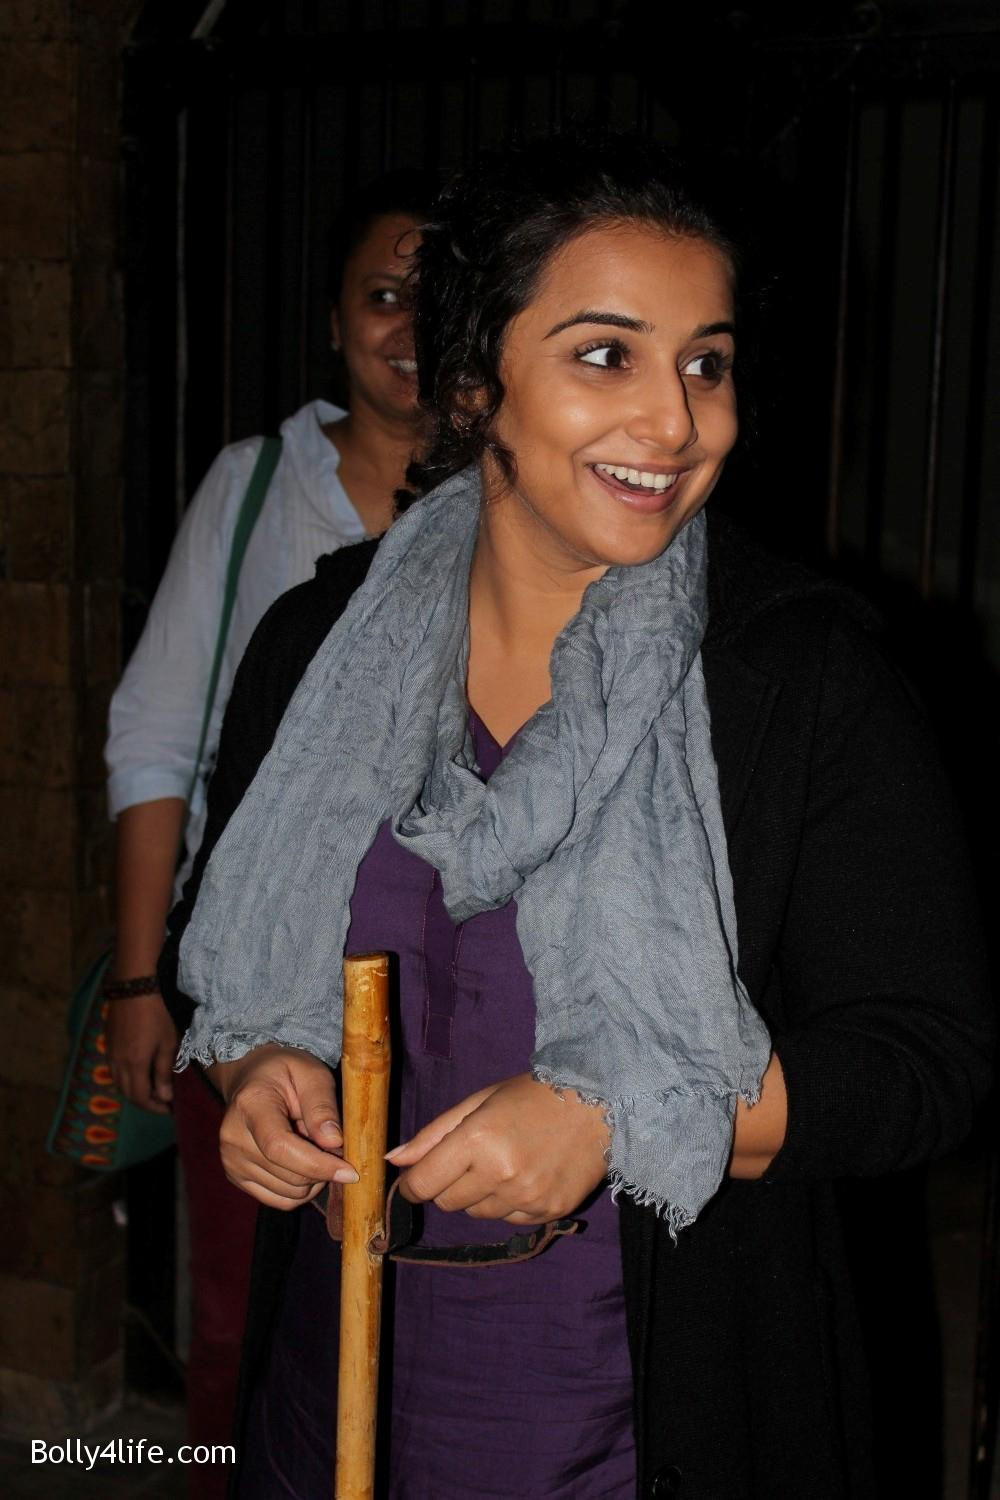 Vidya-Balan-during-the-Interview-for-film-Kahaani-2-8.jpg